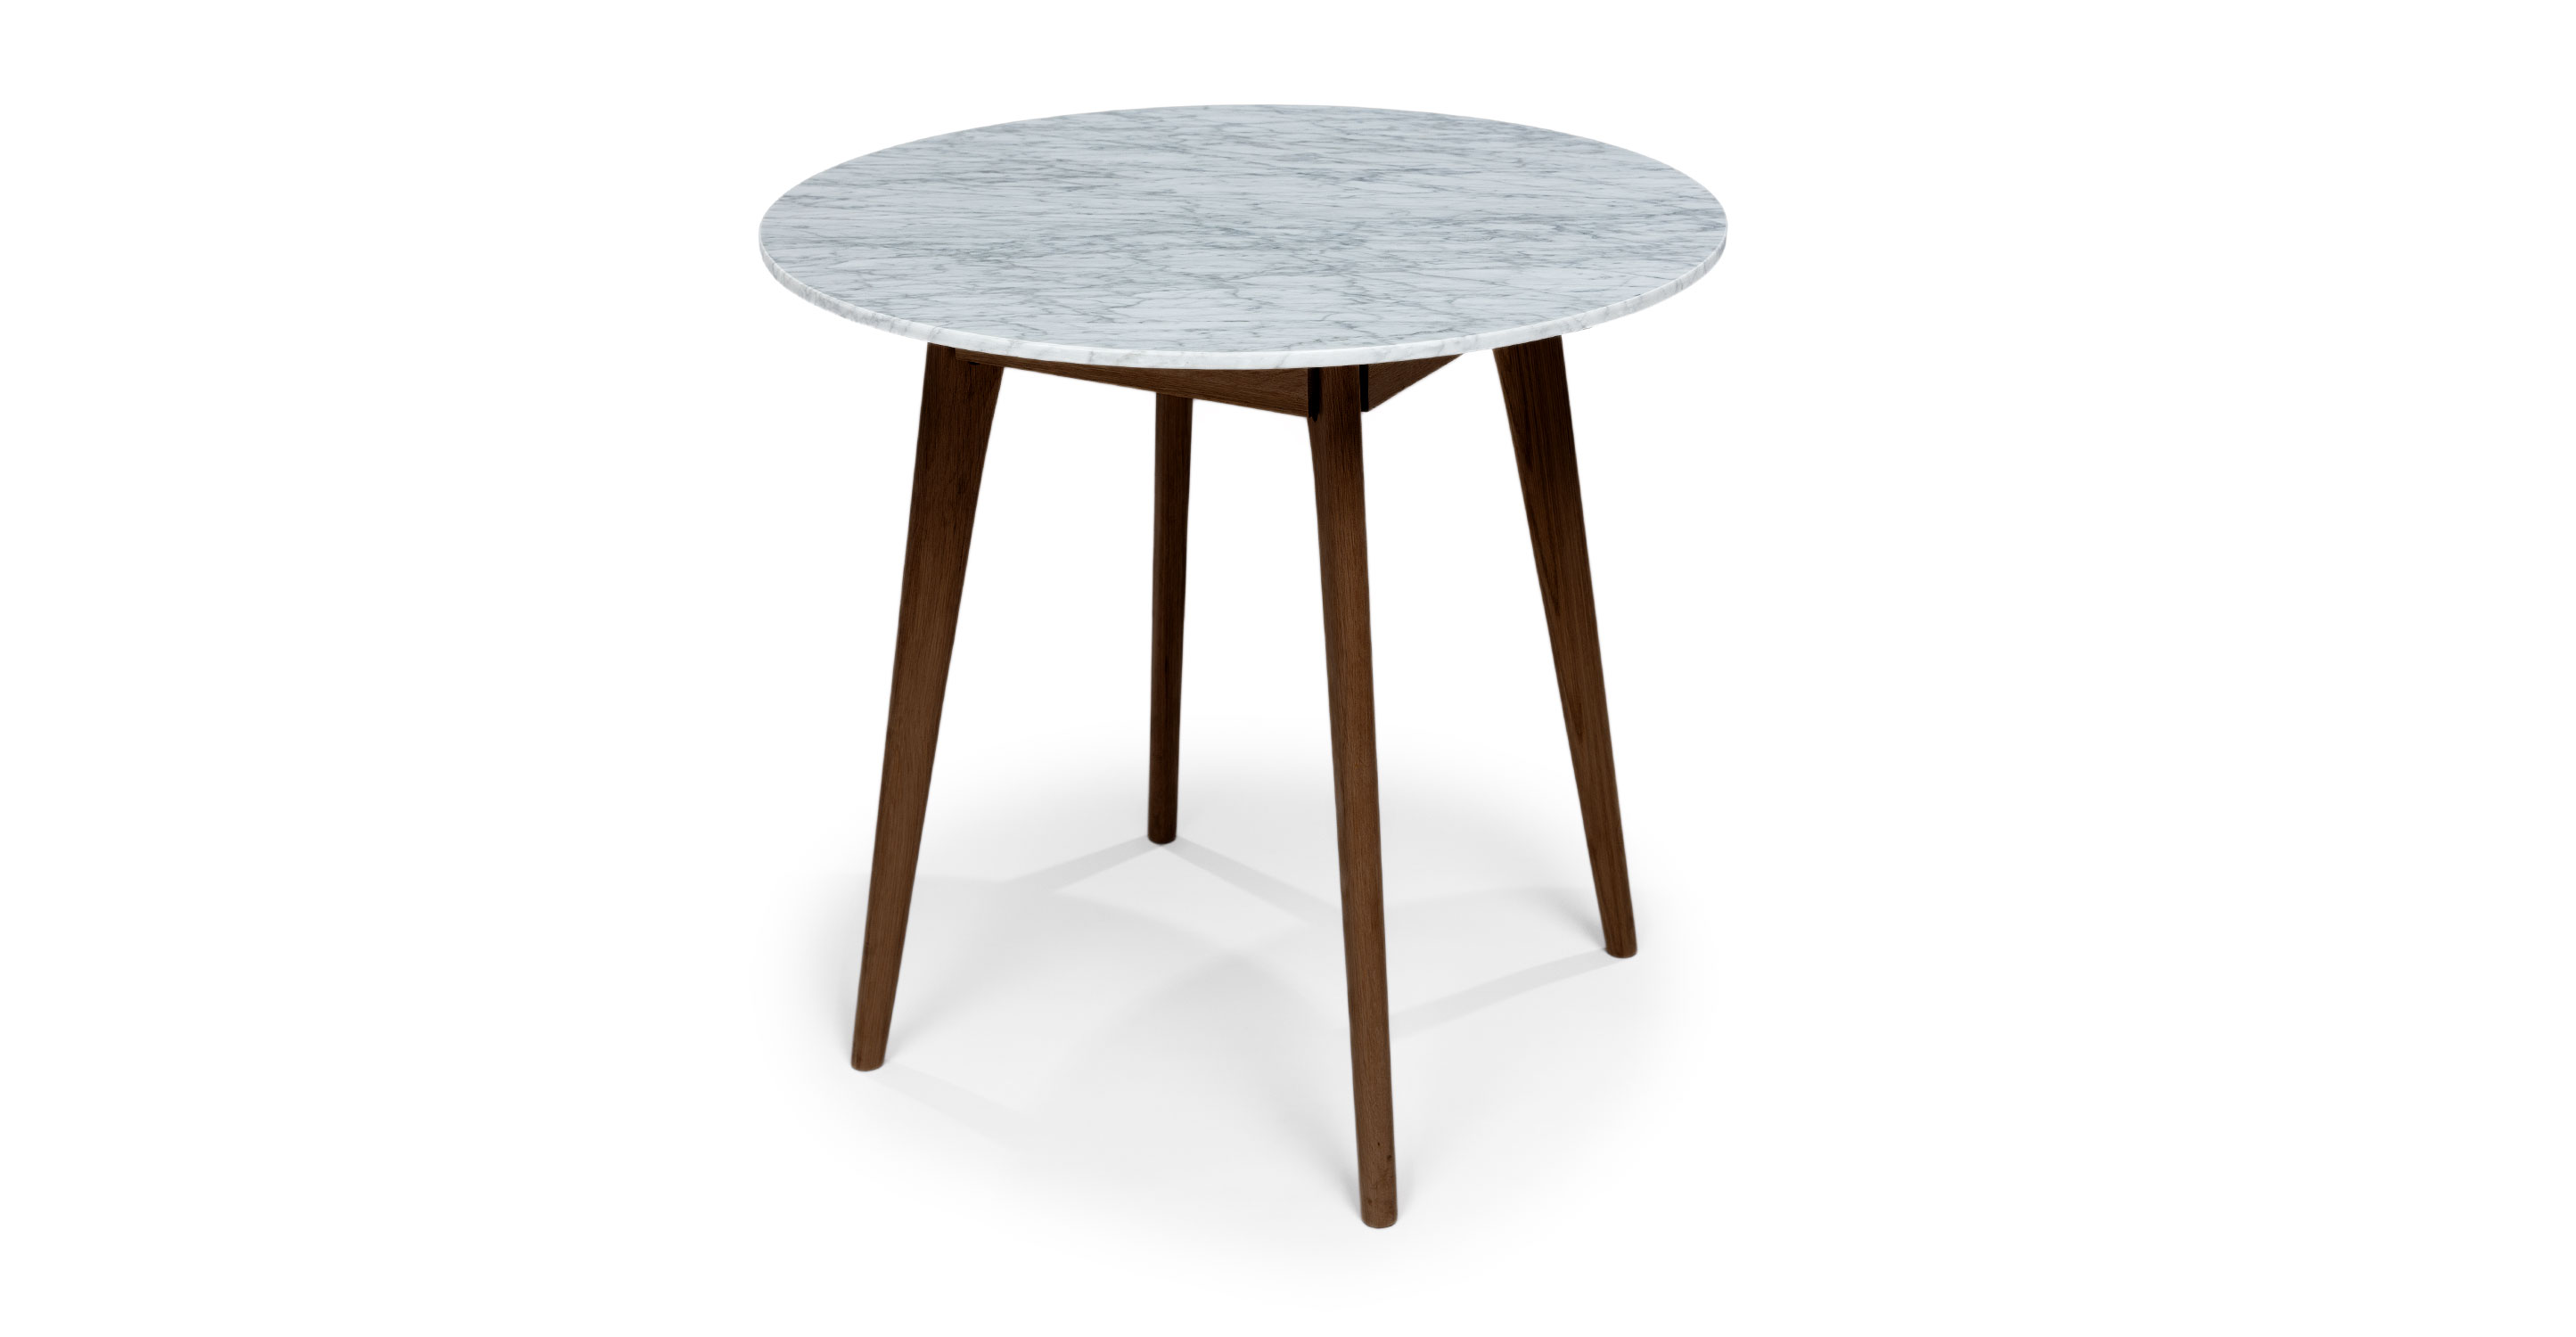 Stained Walnut Marble Round Cafe Table Mara Article